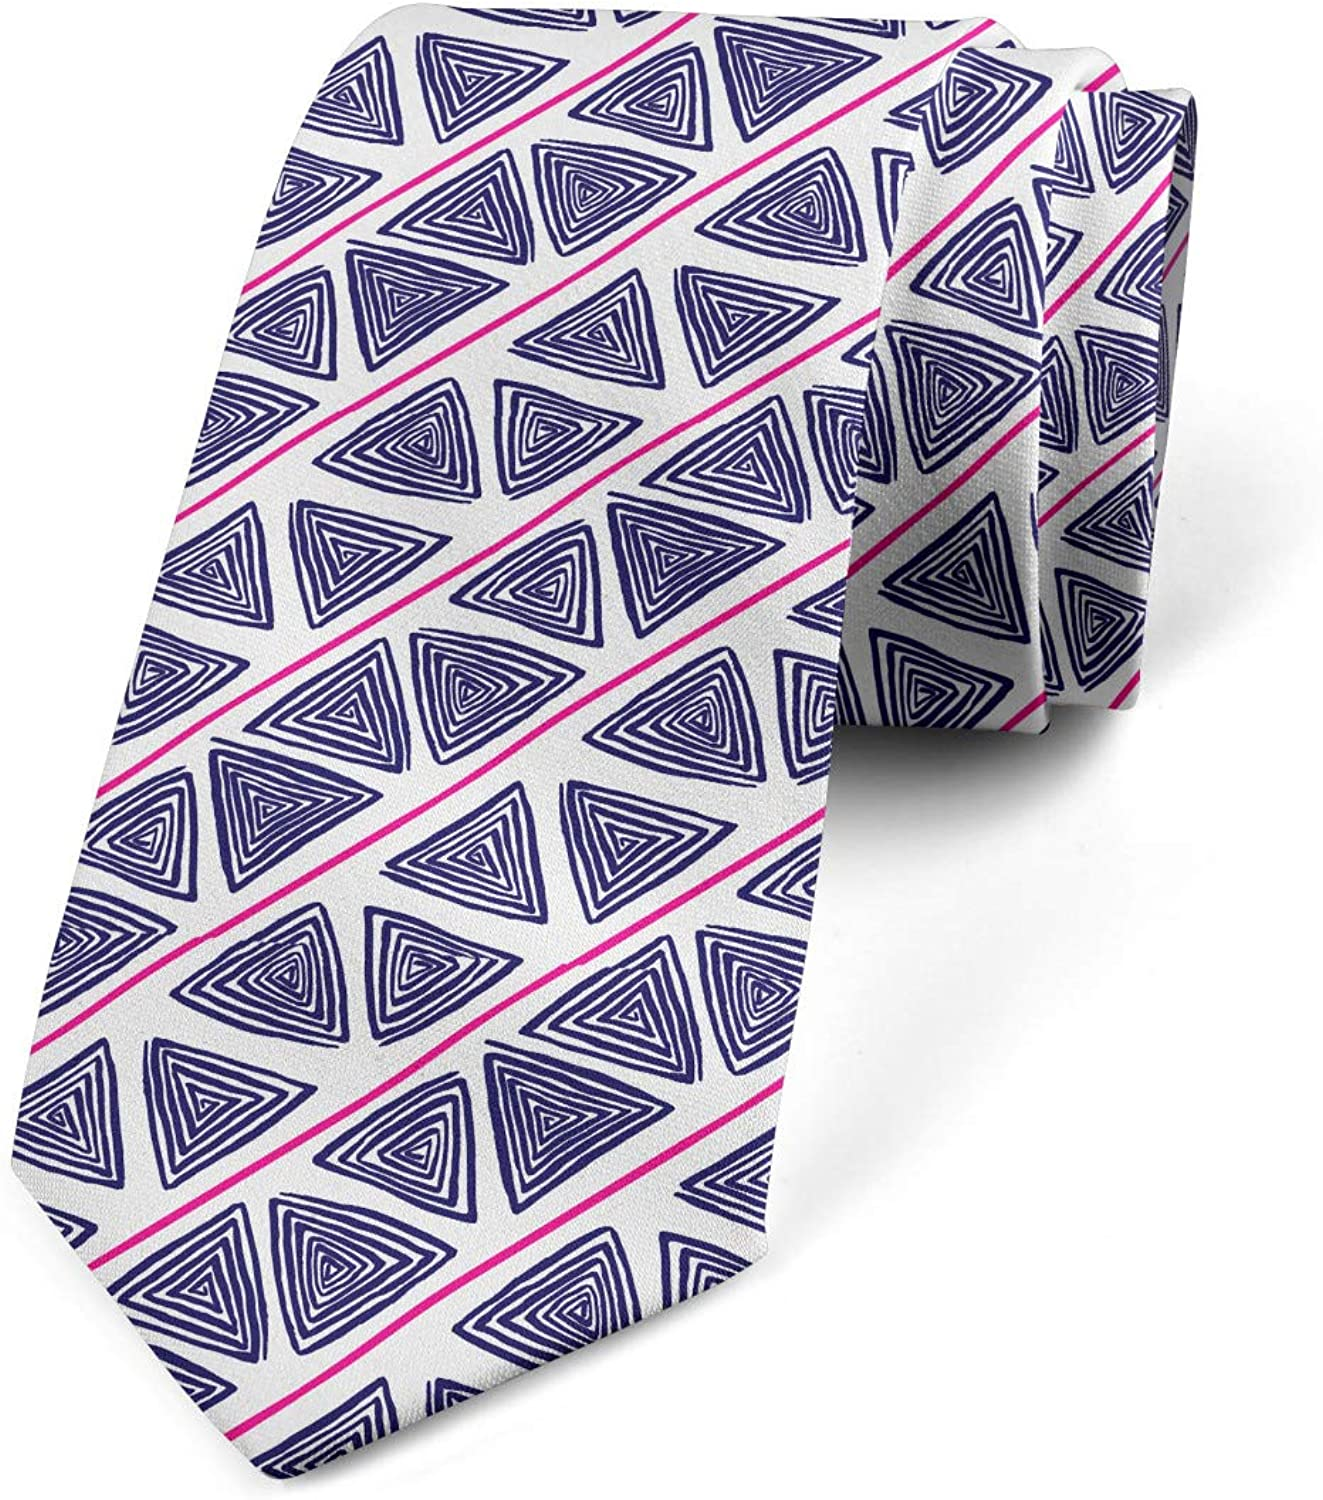 Indigo Hot Pink White Spirals Shapes with Lines 3.7 Lunarable Mens Tie